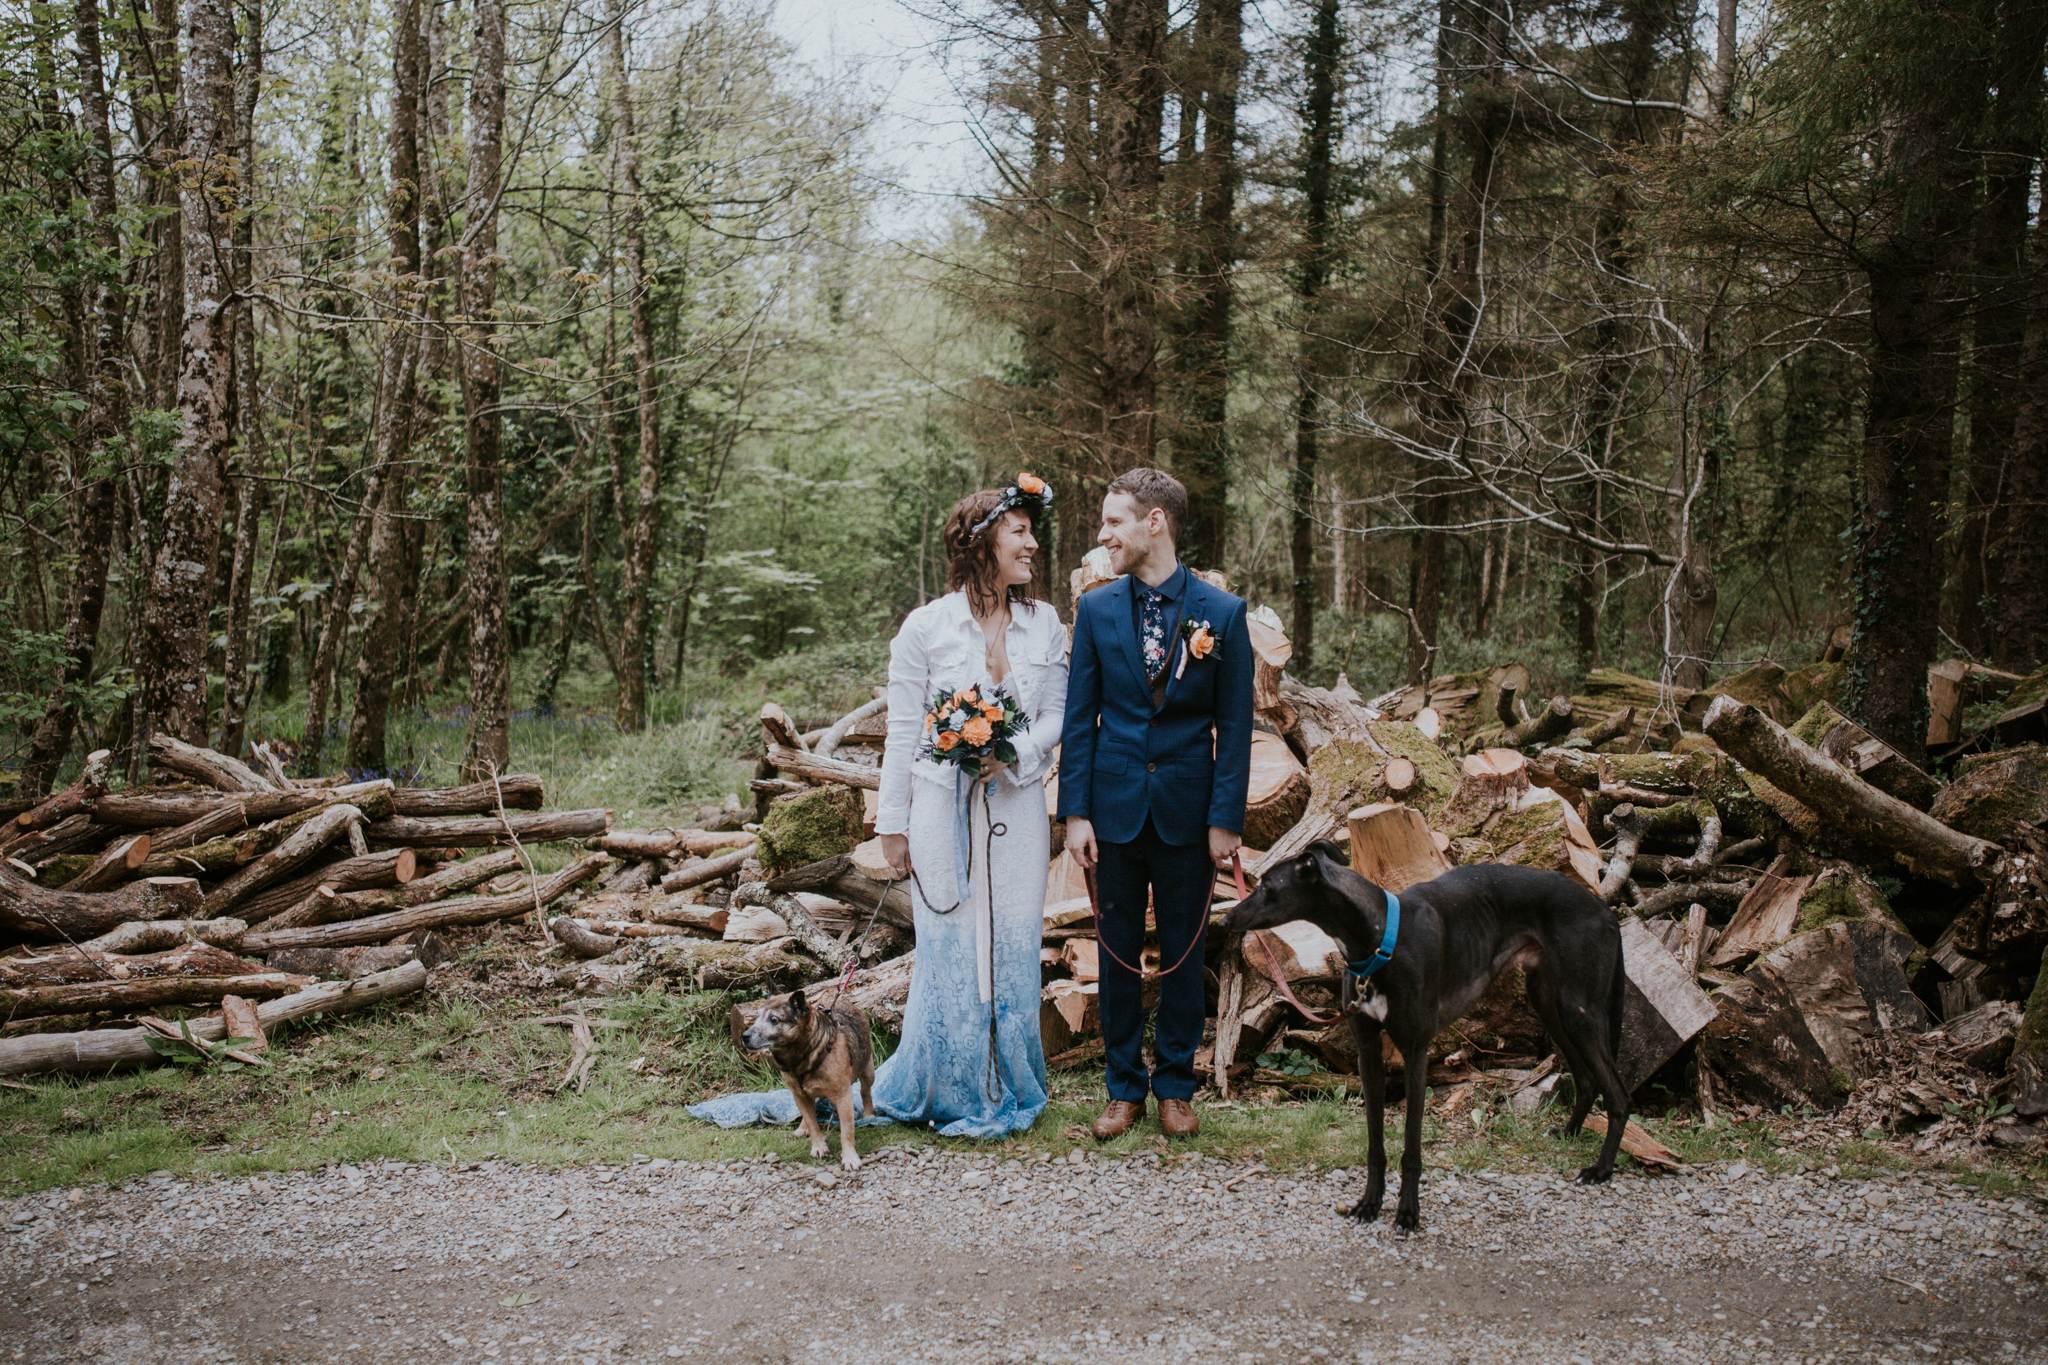 Bride and groom together with their dogs Finn and Alfi on the couple photo shoot in Inish Beg woodland